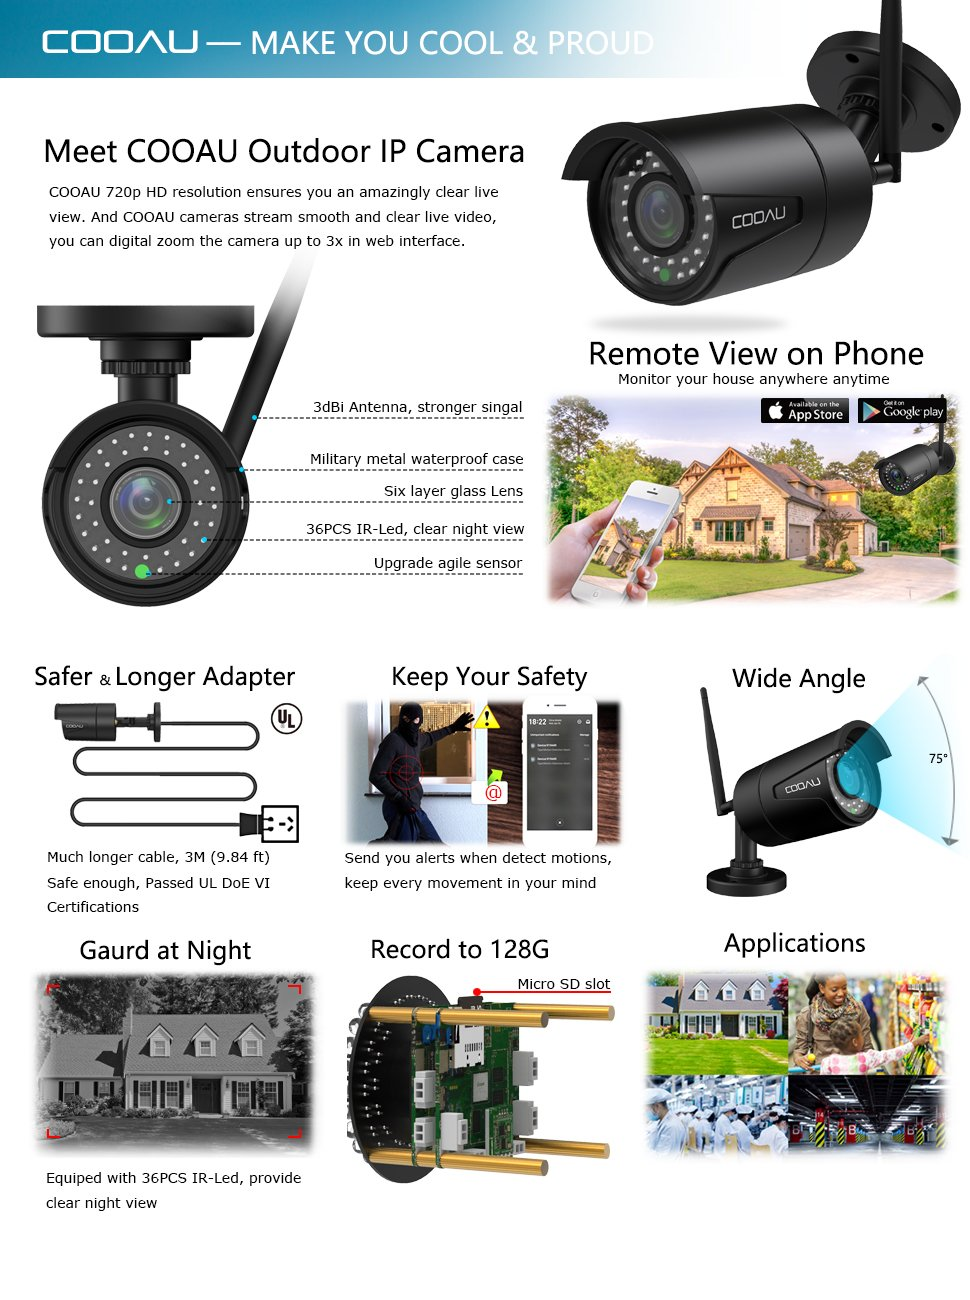 cooau outdoor ip camera wifi wireless security. Black Bedroom Furniture Sets. Home Design Ideas